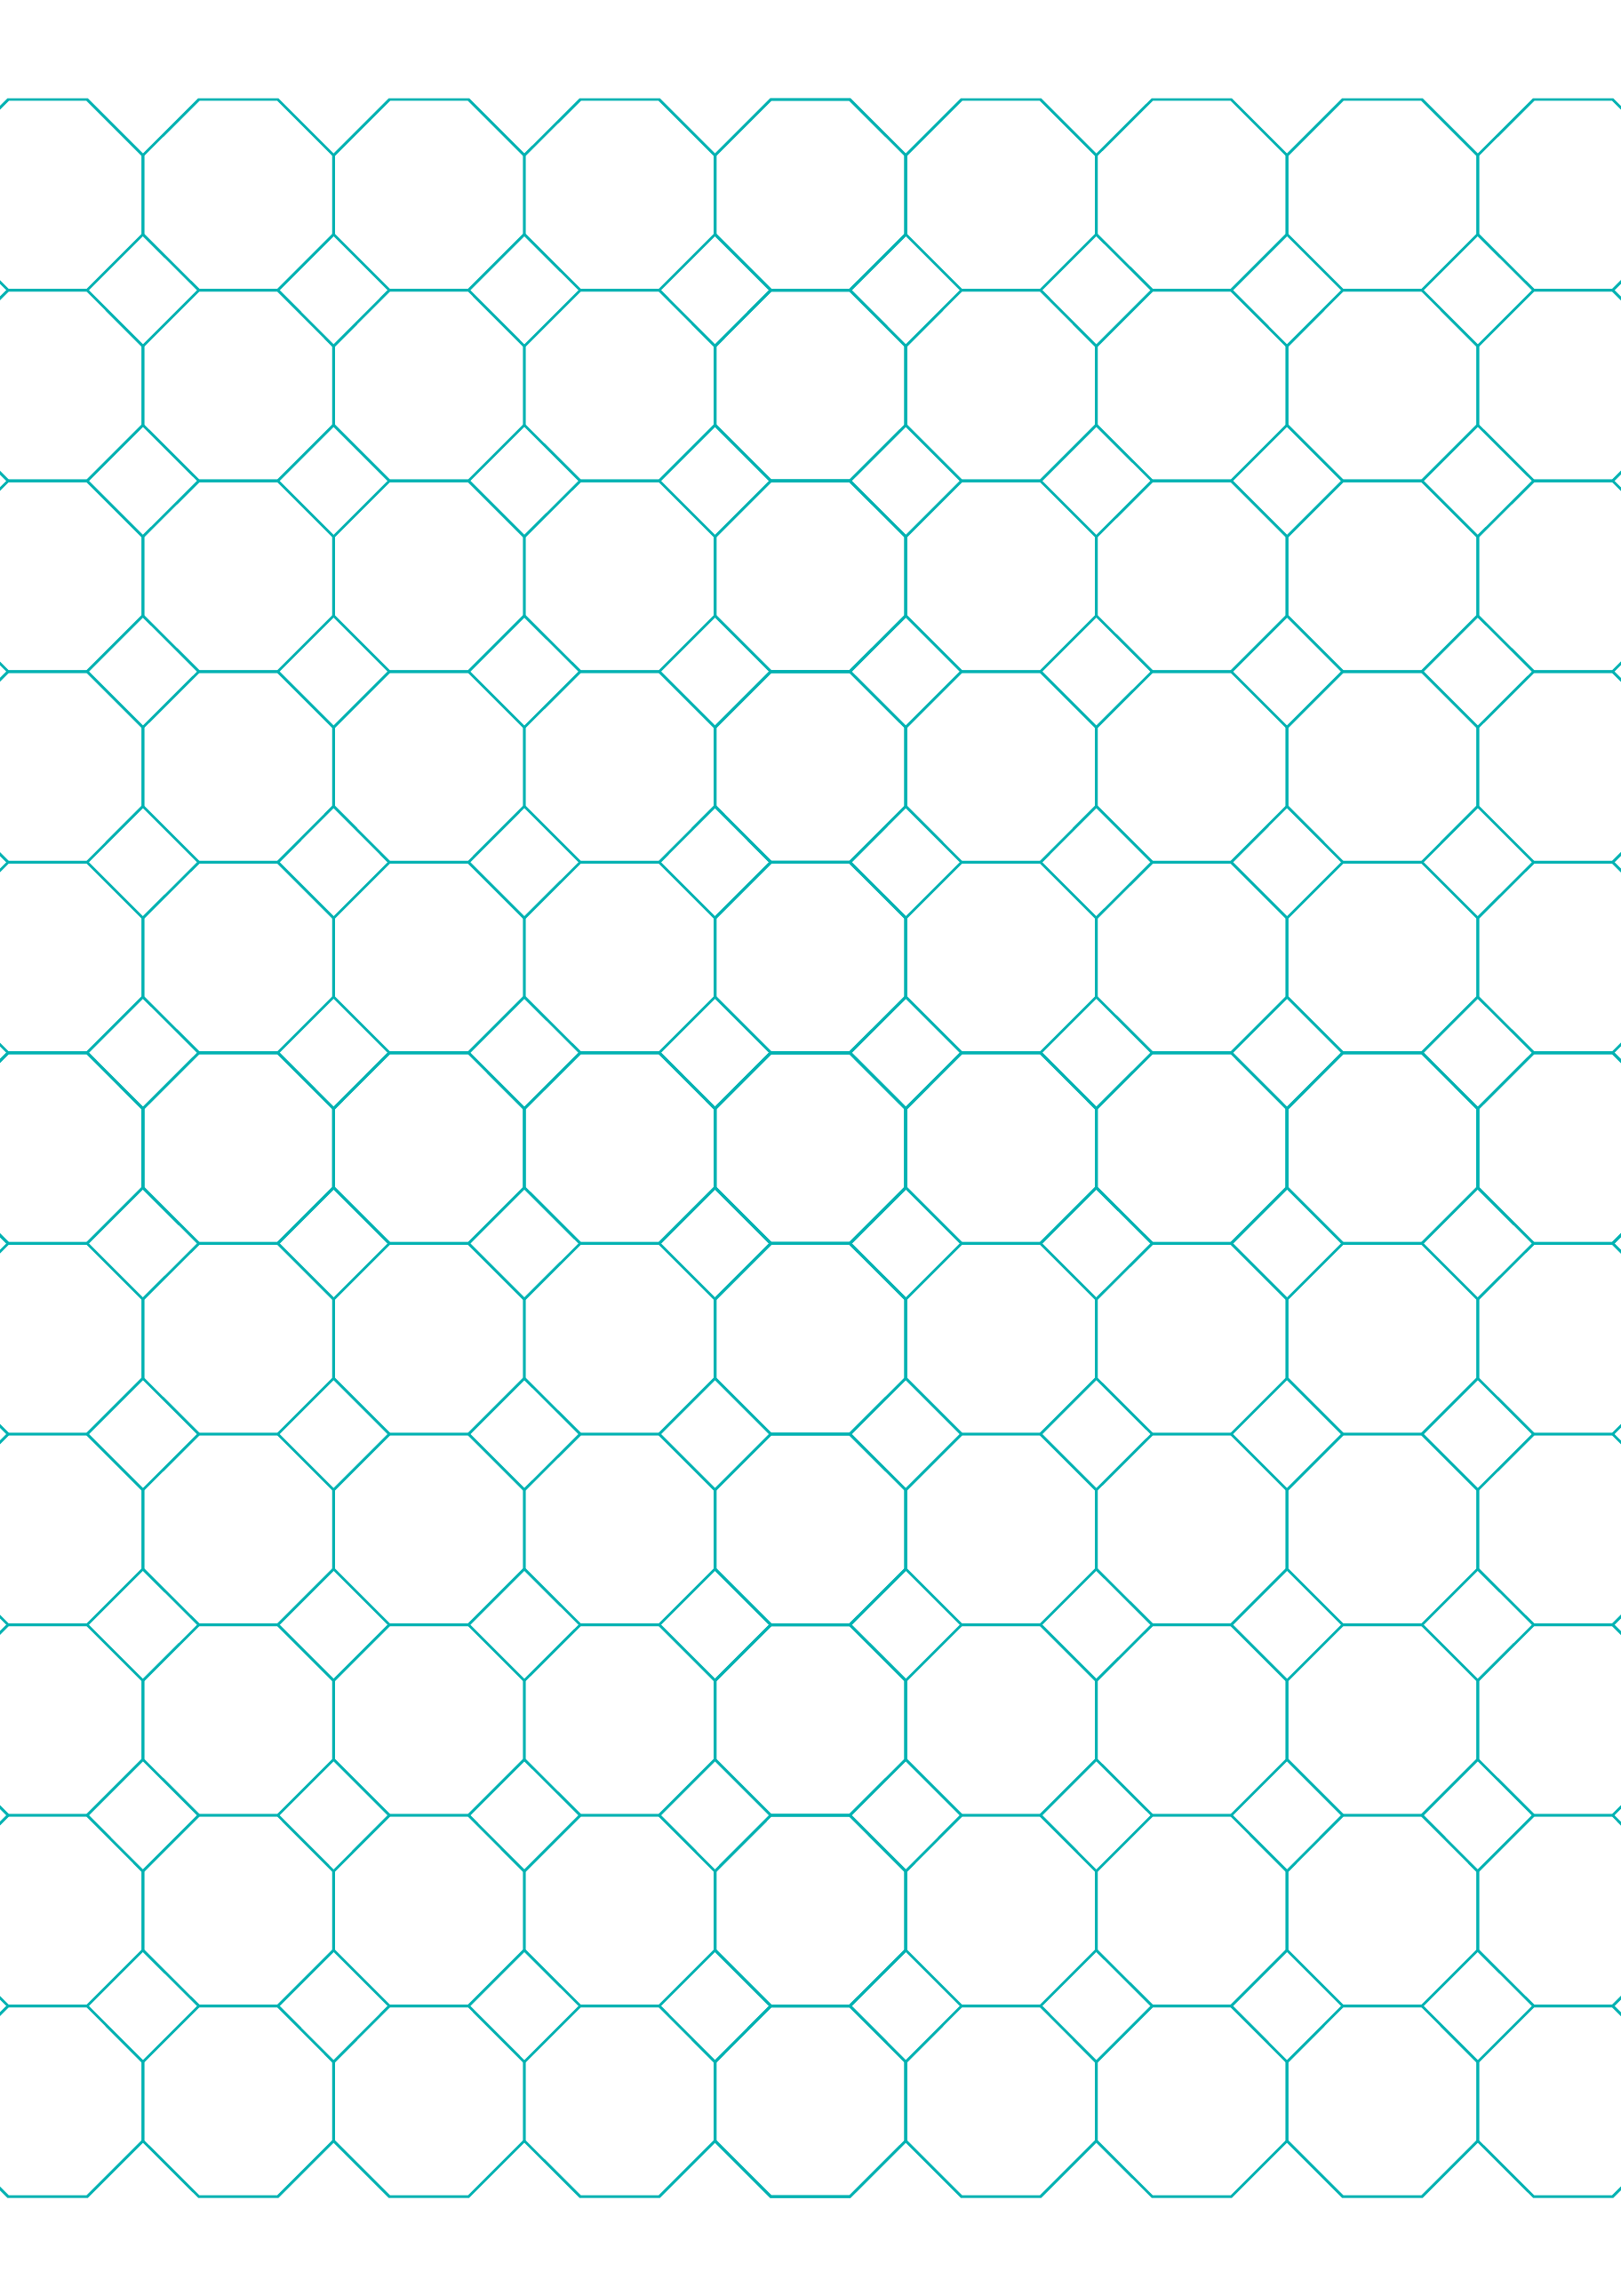 Octagon Graph Paper | Octagon Graph Paper With 1 Inch Spacing On Letter Sized Paper Free